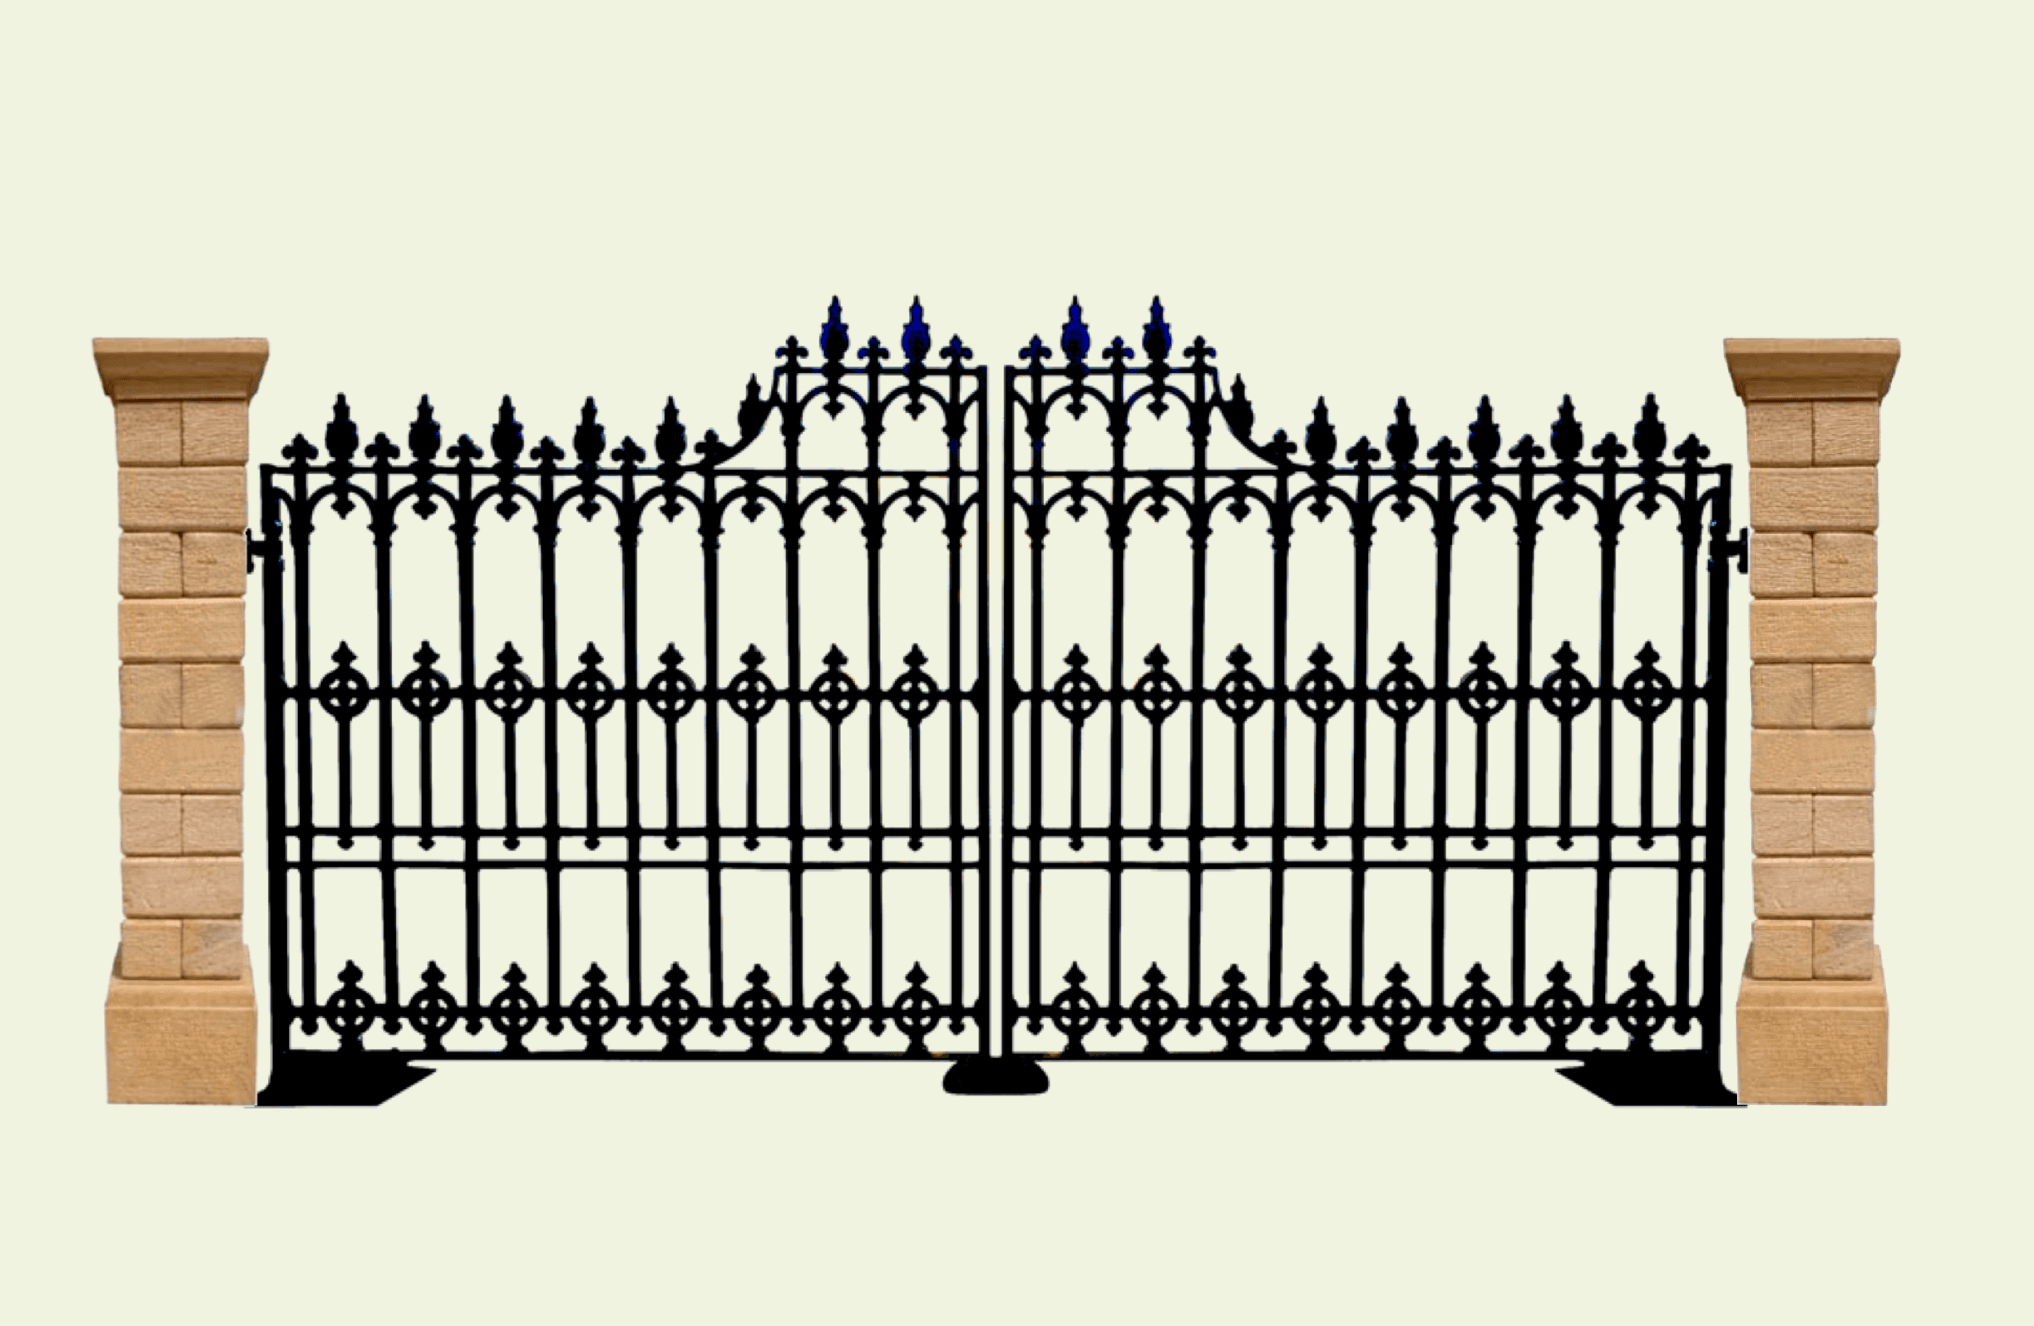 Celtic Knot Gate – Import Channel Intended For Celtic Knot Iron Garden Benches (View 24 of 25)